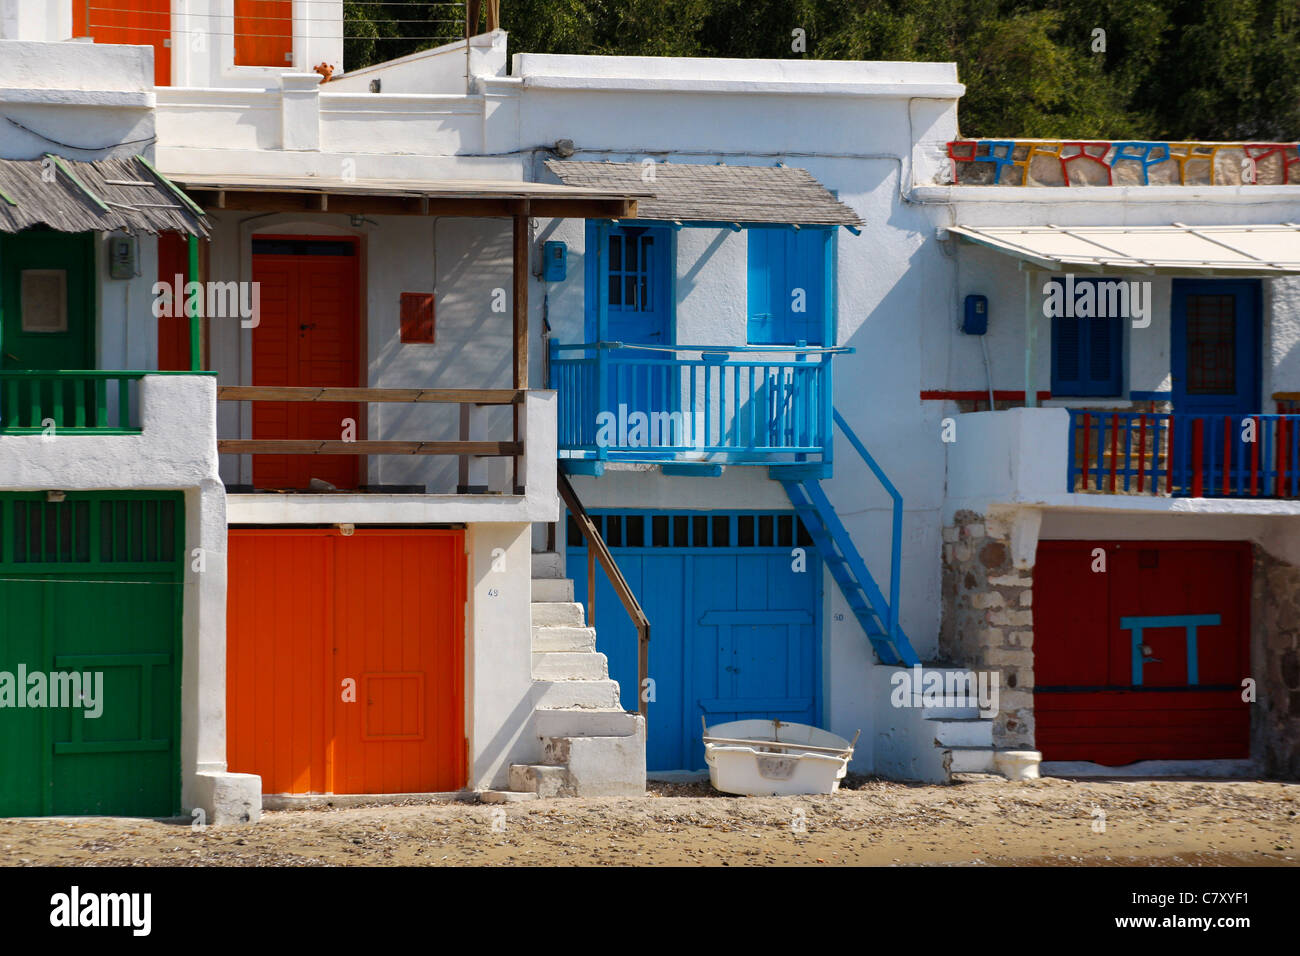 The picturesque village of Klima in Milos island Greece - Stock Image